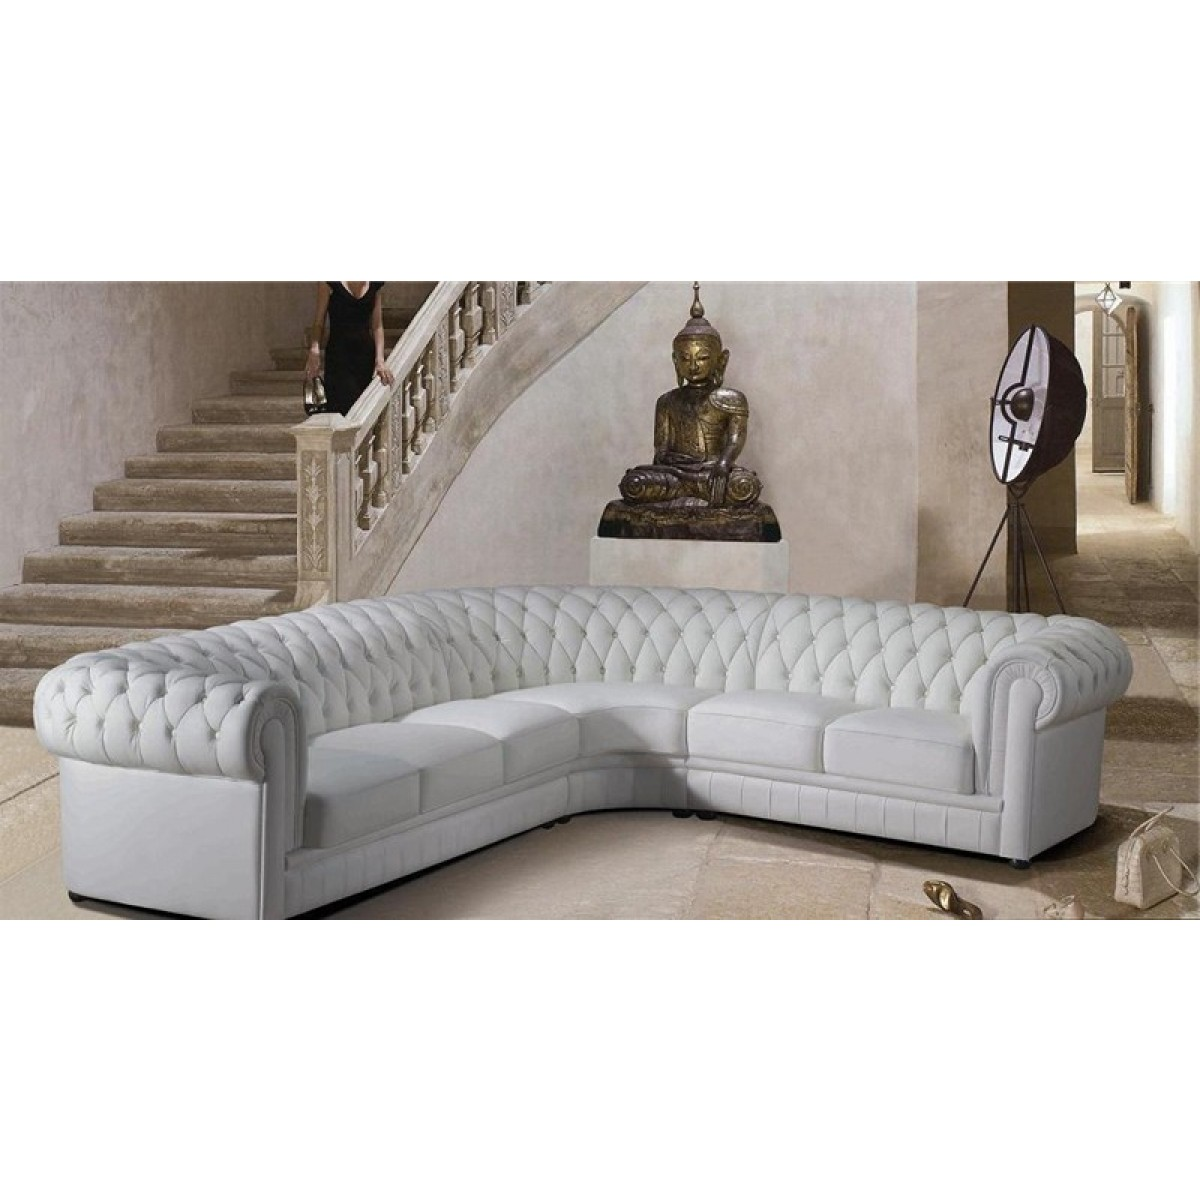 Grand canap d 39 angle en cuir pleine fleur chesterfield pop - Canape d angle chesterfield ...